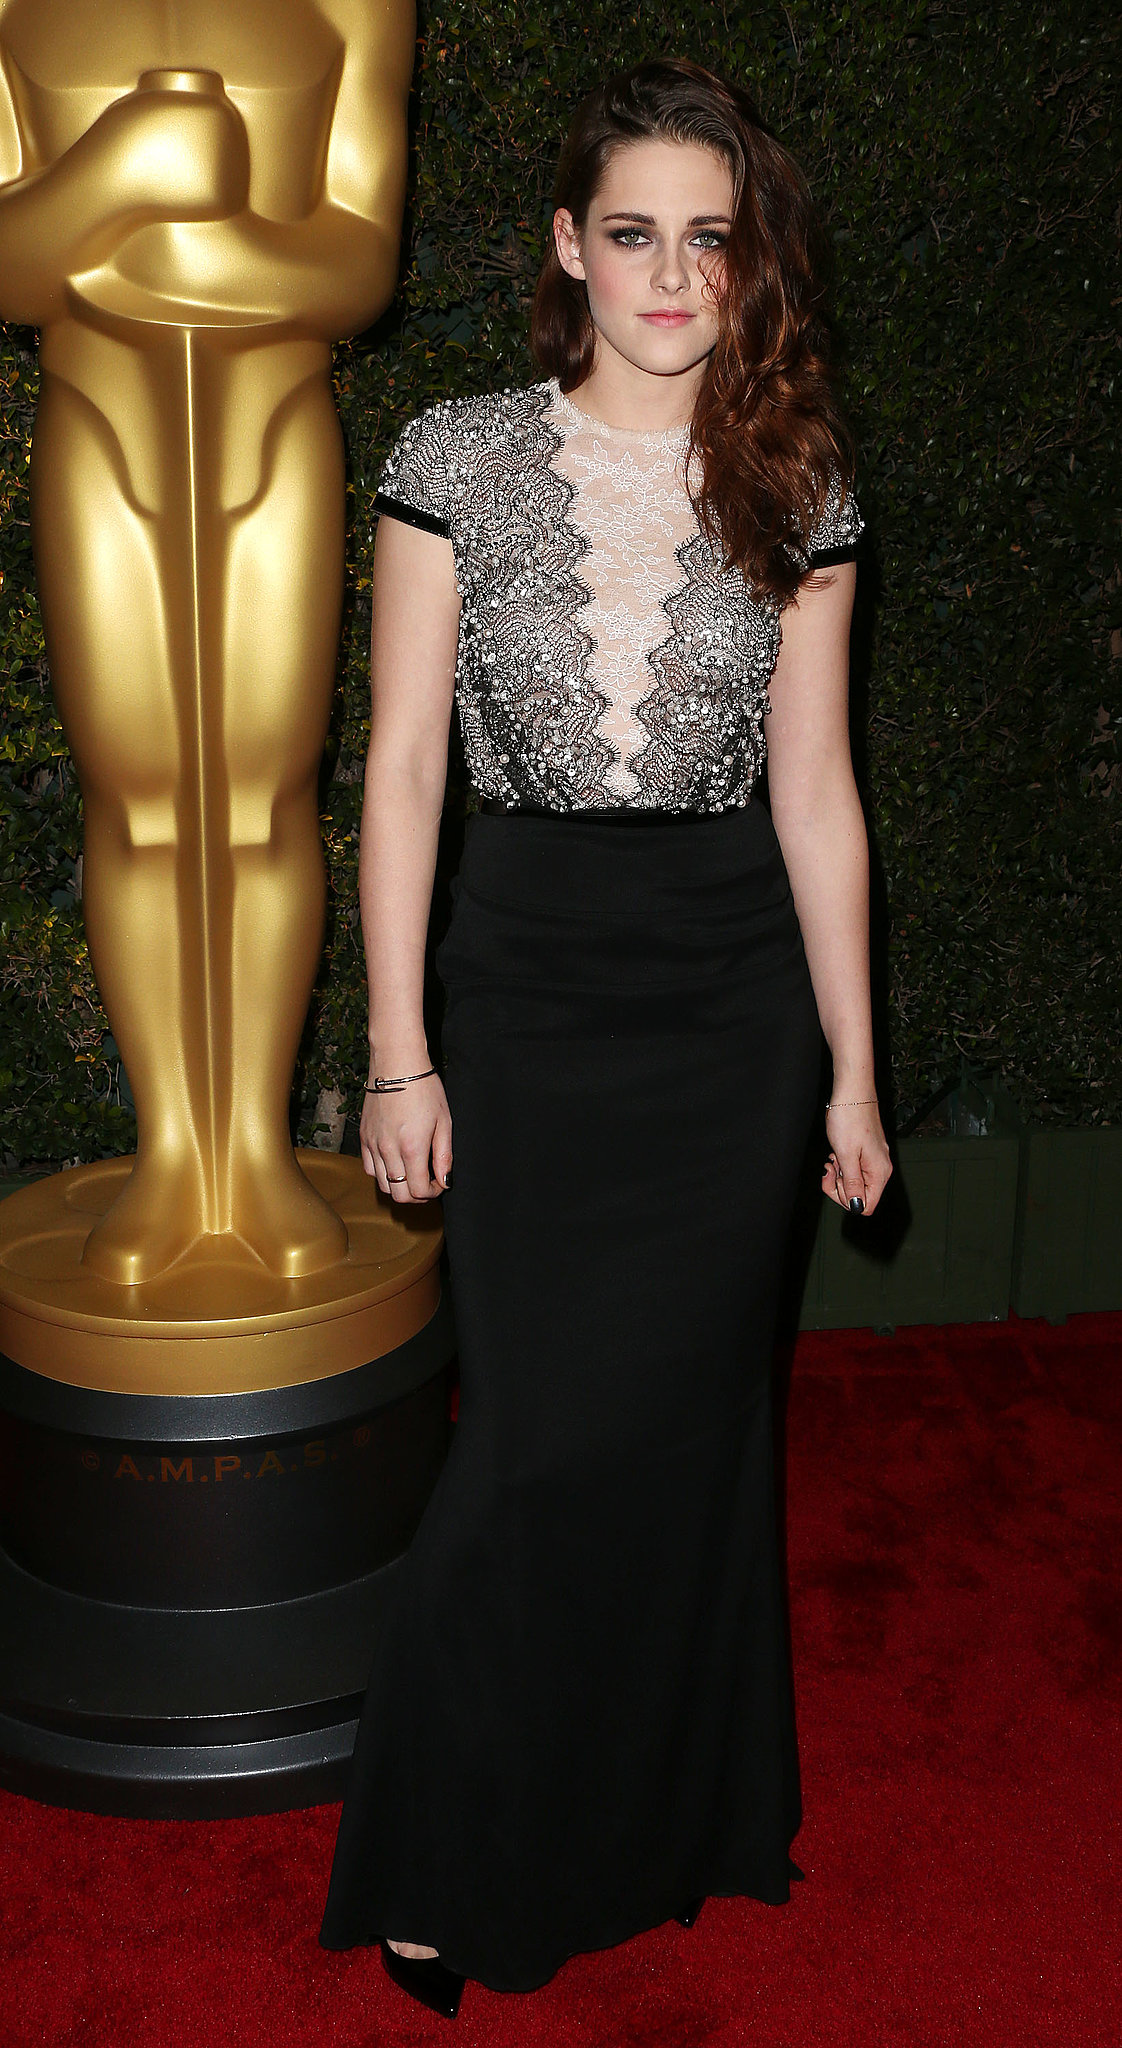 For an award ceremony in December 2012, Stewart chose a lace- and sequin-embellished Talbot Runhof gown and finished it off with classic black pumps and a dainty Cartier bracelet.